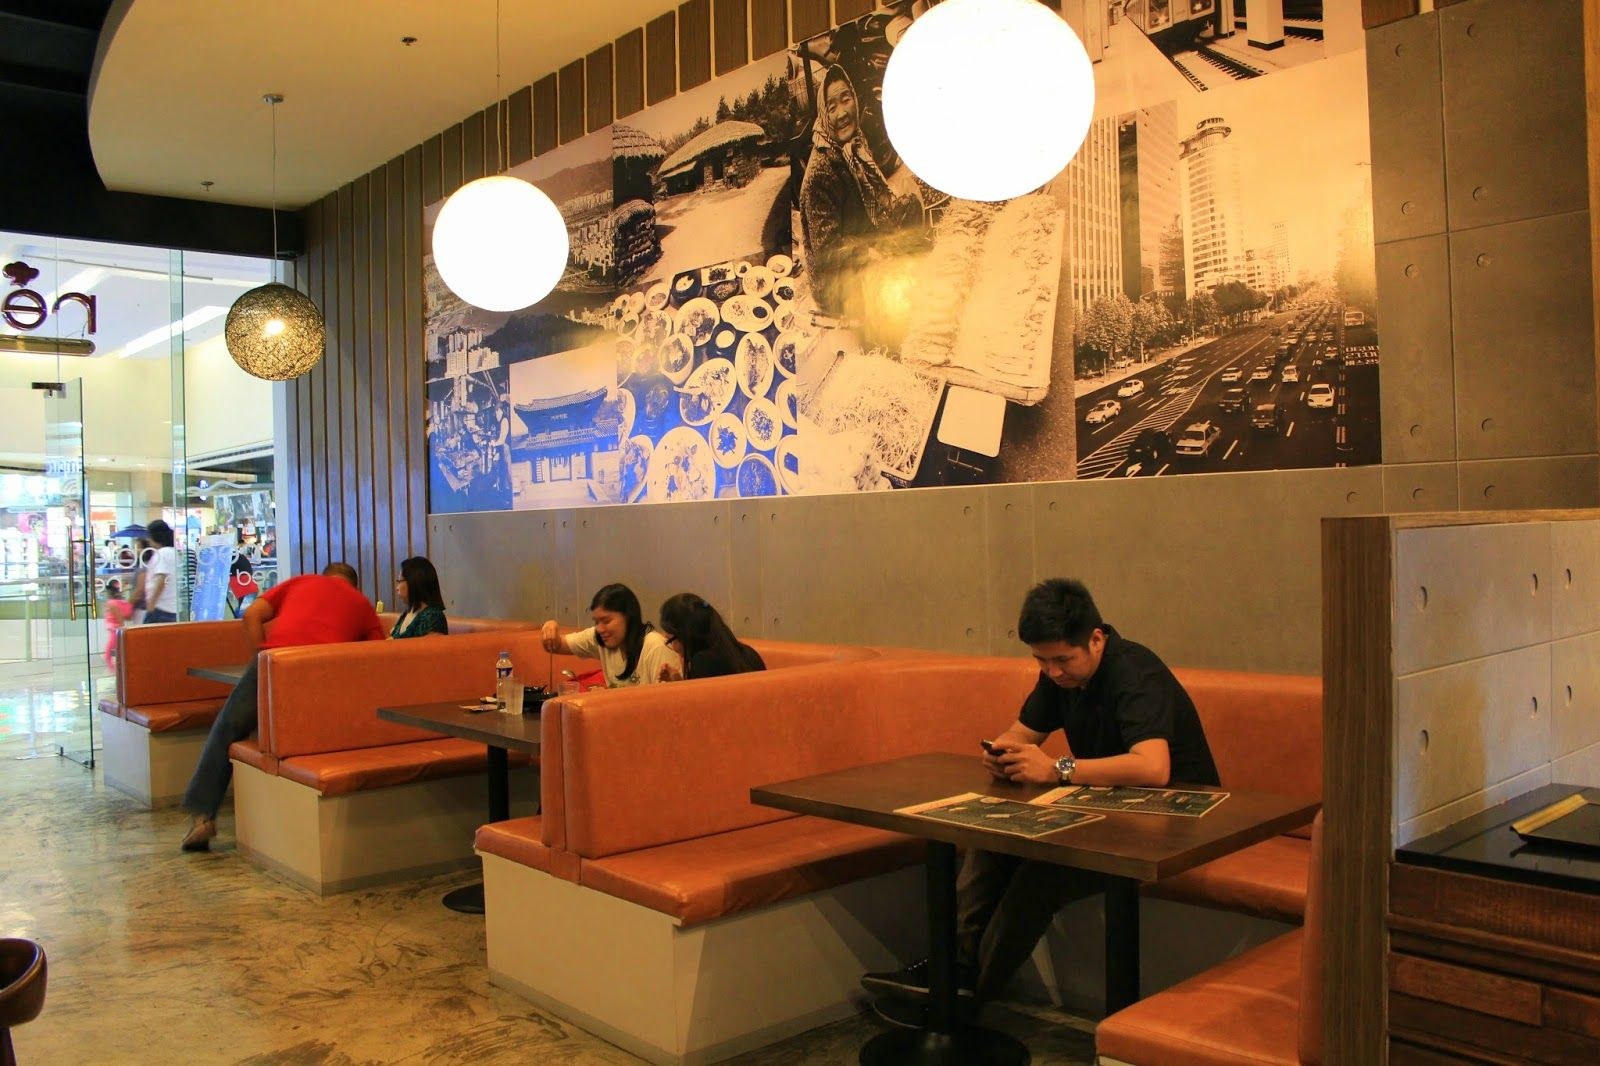 Decoration Fast Food Red Table Korean Fast Casual Restaurant Interior